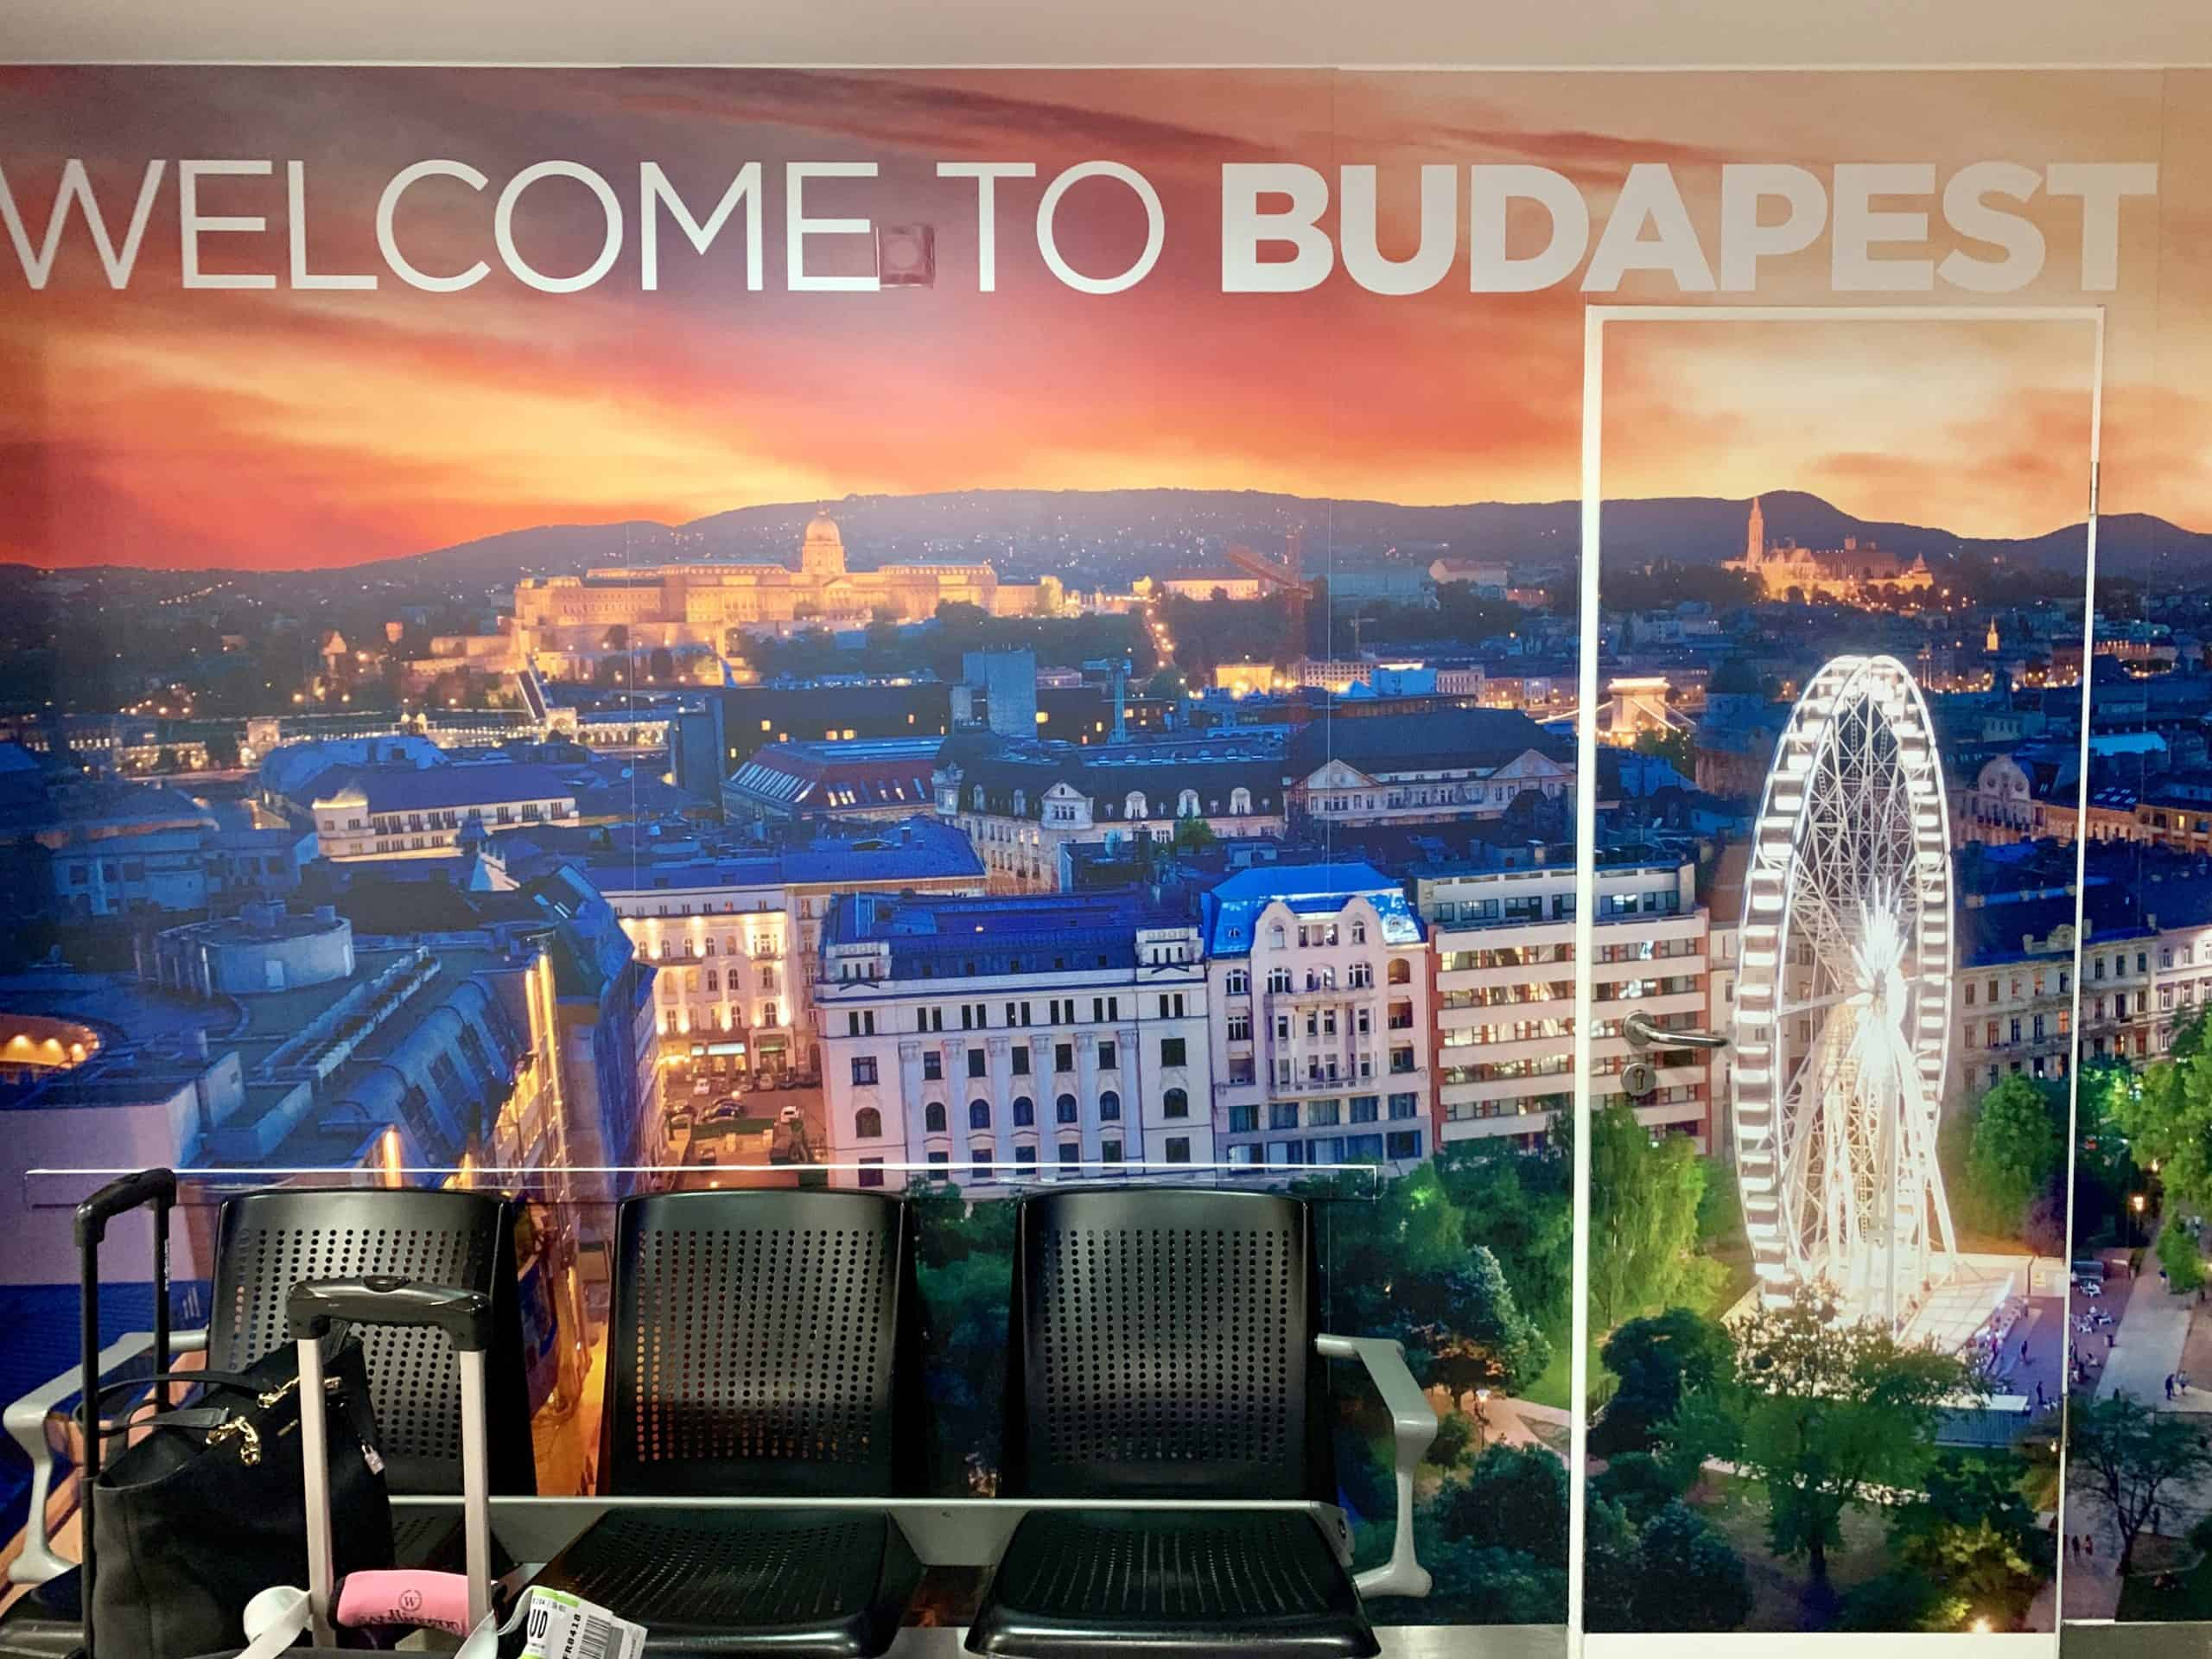 welcome to budapest sign at airport